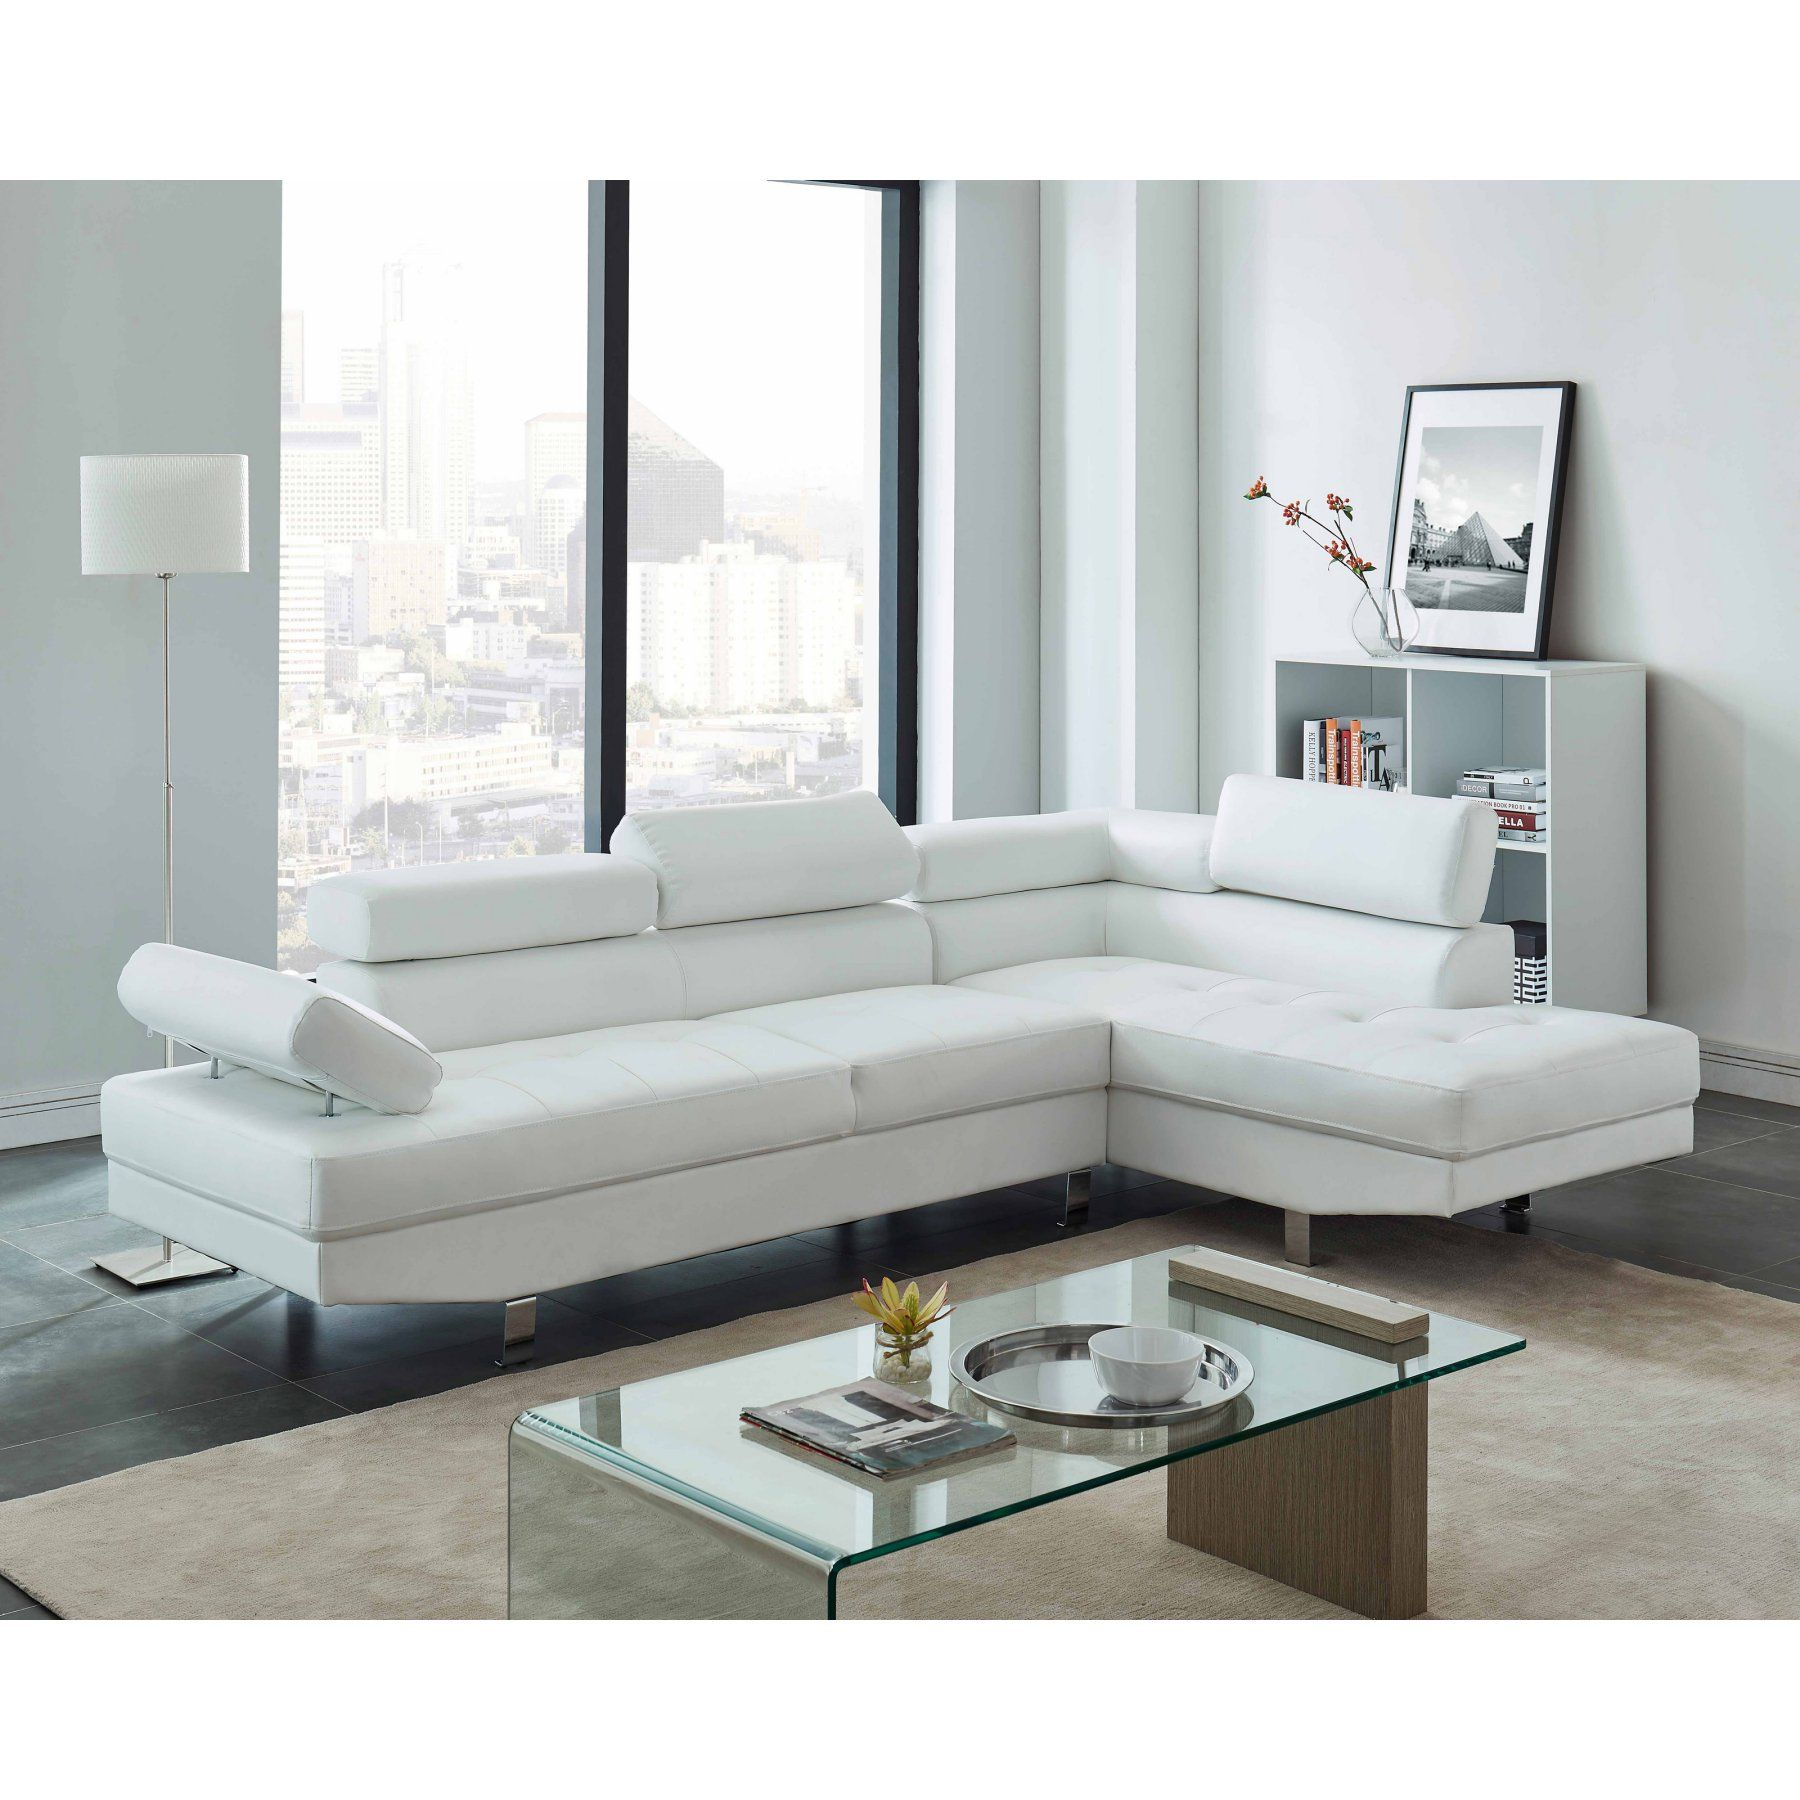 Milton Greens Stars Rocco Modern Sectional  8062 White